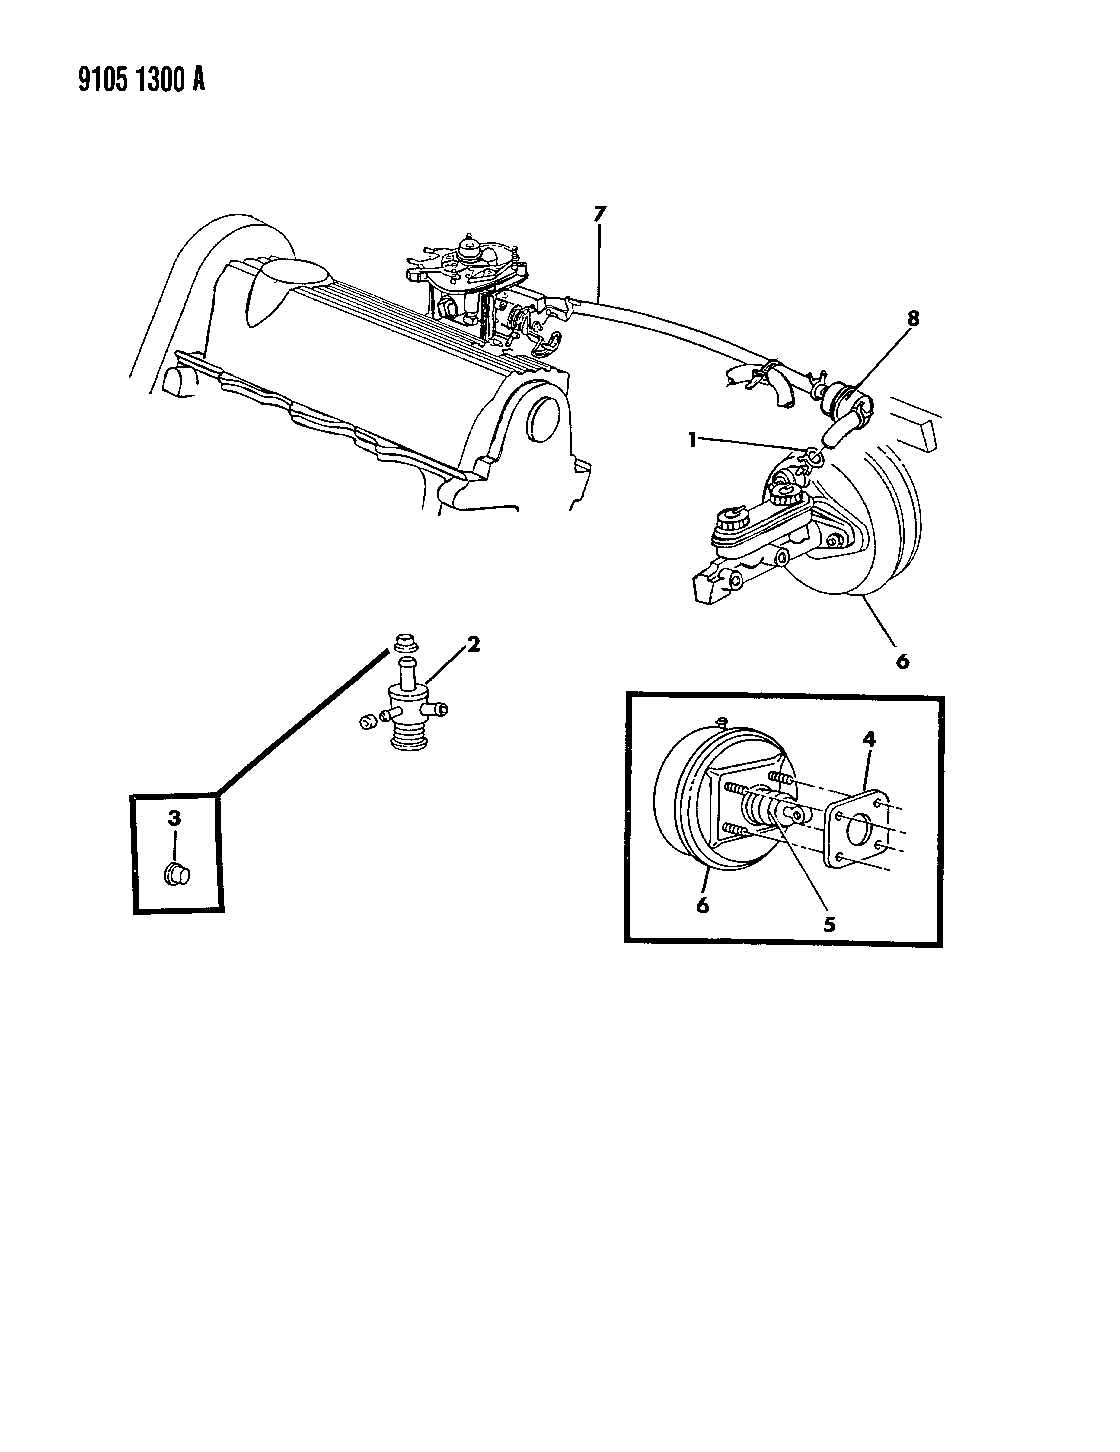 1989 Chrysler Lebaron Gtc Booster Power Brake Steering Diagram Wiring